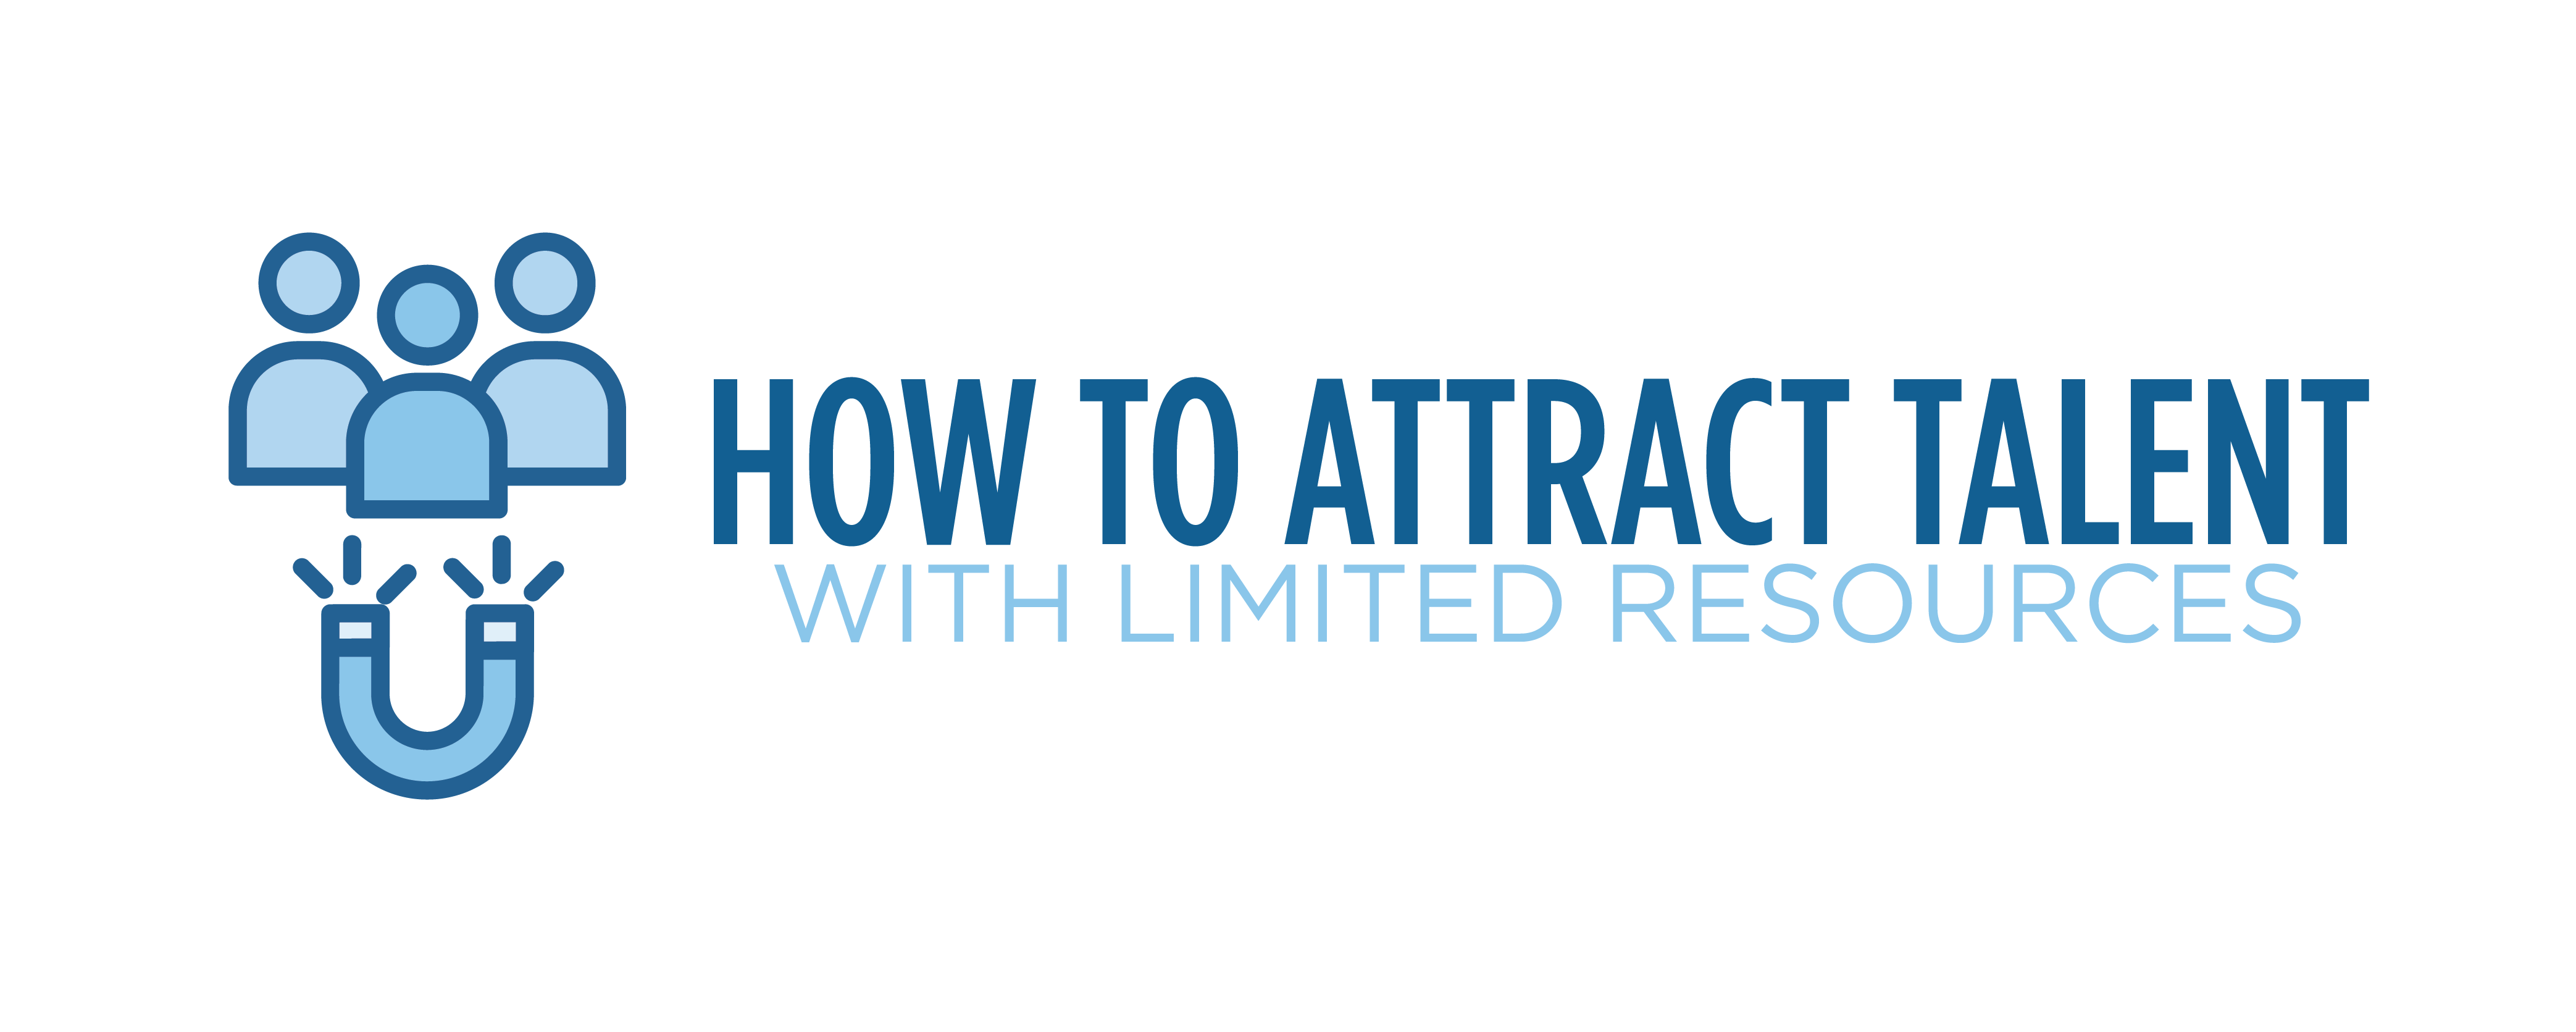 how to attract talent with limited resources